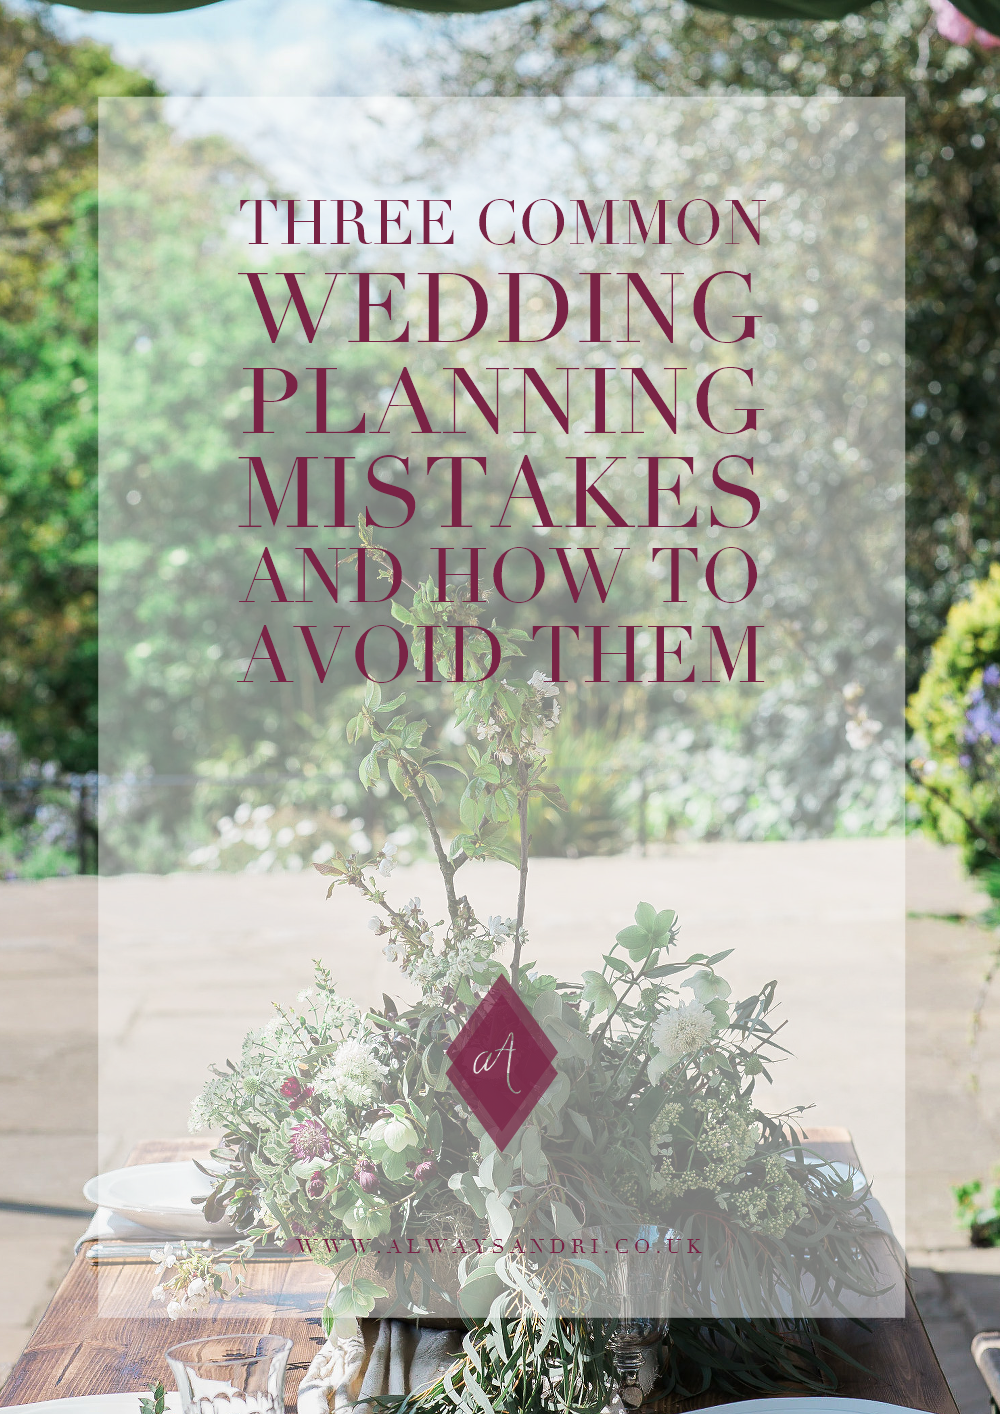 Three-common-wedding-planning-mistakes-how to avoid-them-Always-Andri-Wedding-Design